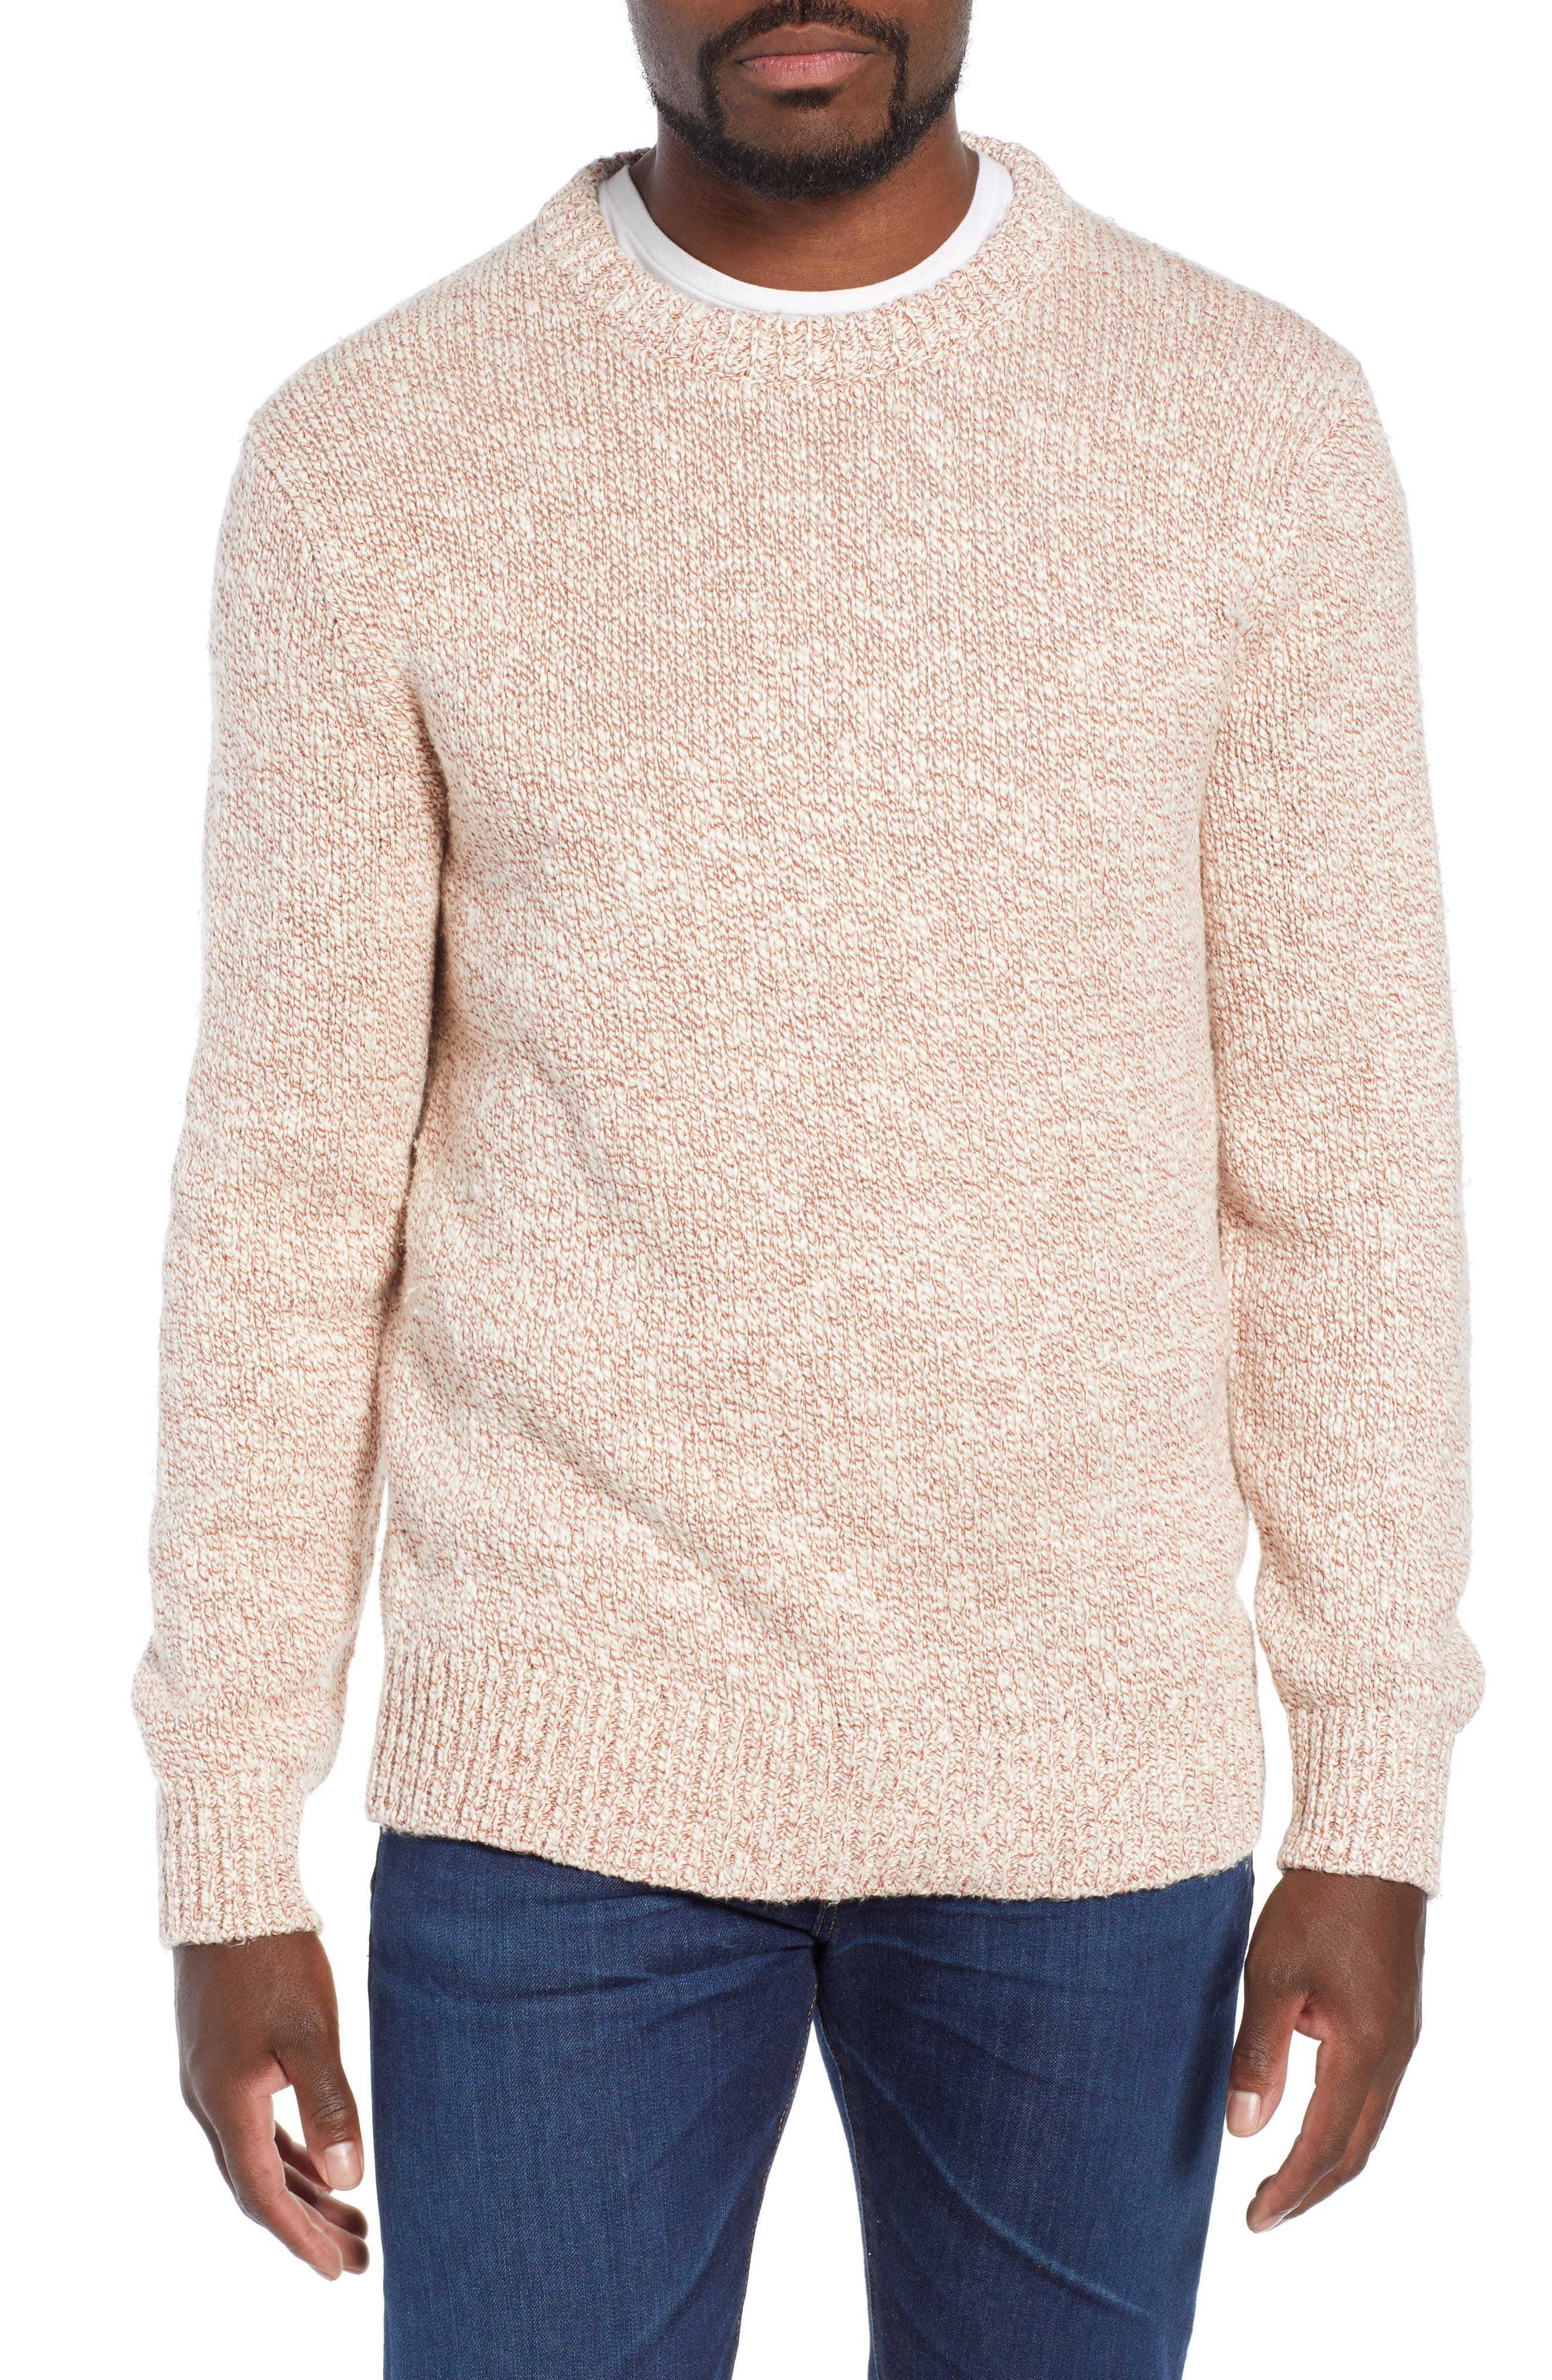 Wallace & Barnes Crewneck Marled Cotton Sweater,                         Main,                         color, TERRACOTTA